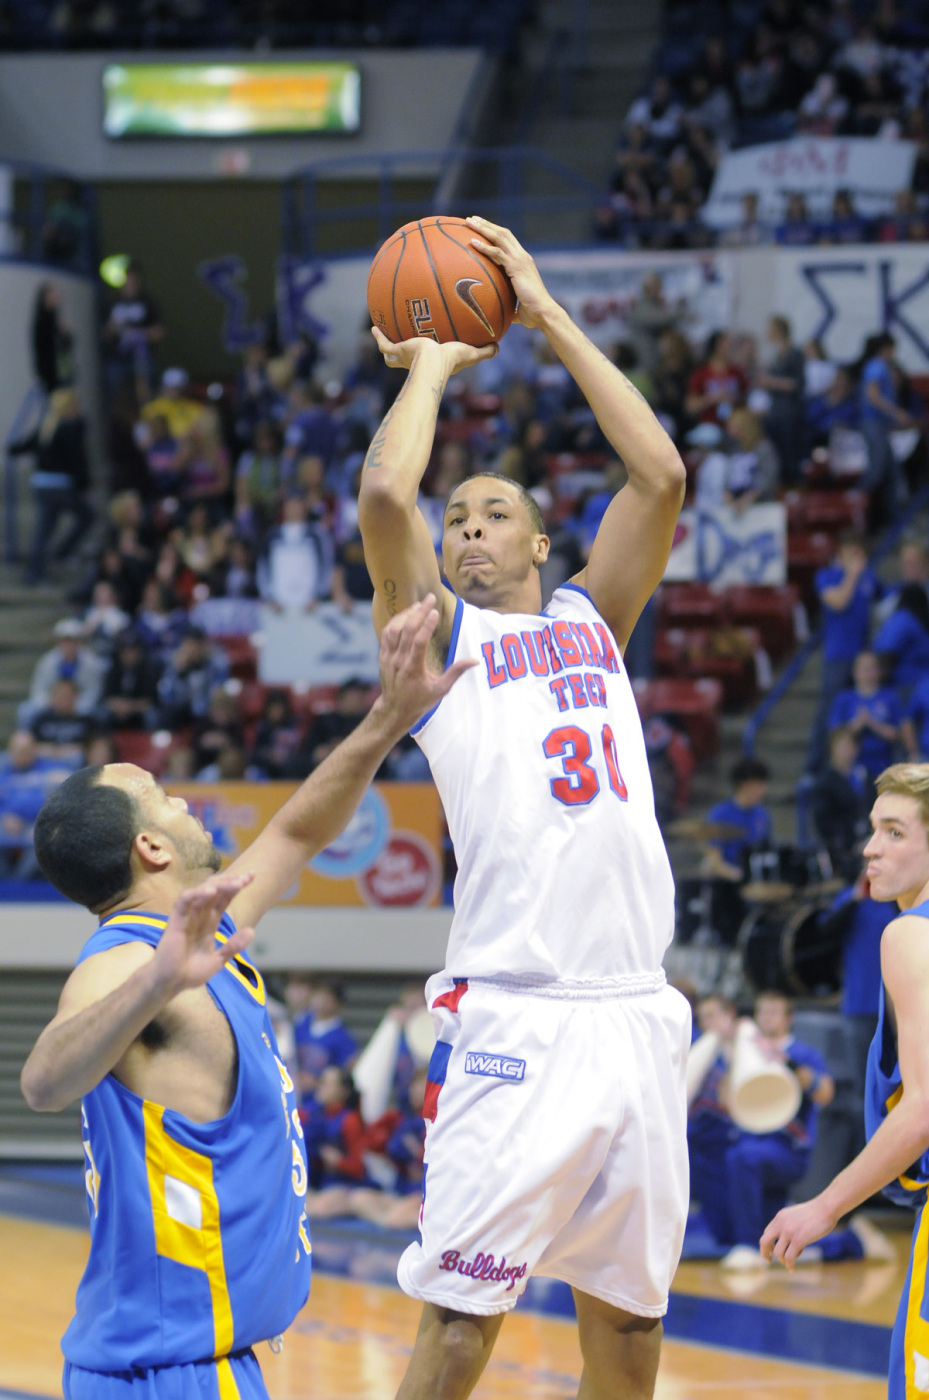 David Jackson, along with Shawn Oliverson, graduated from LA Tech on Thursday.